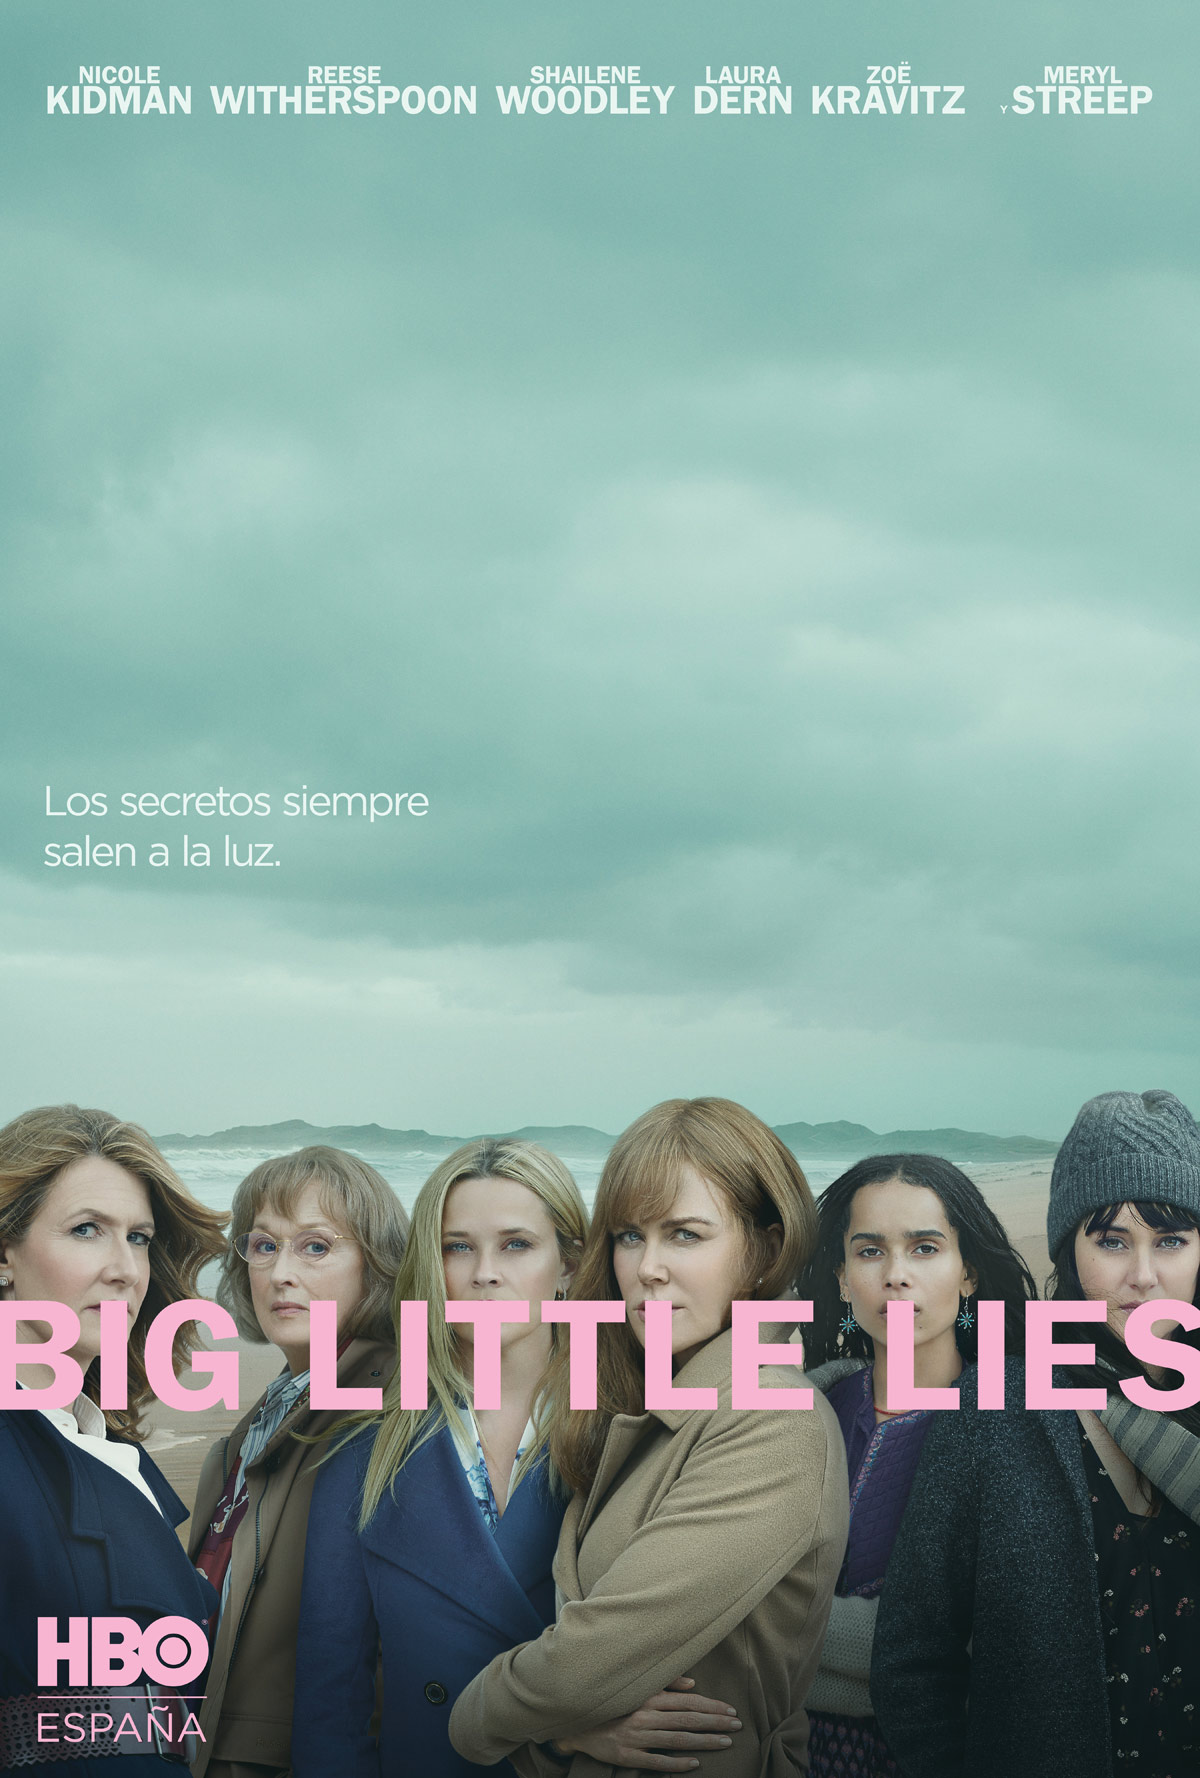 Big Little Lies - Serie 2017 - SensaCine.com